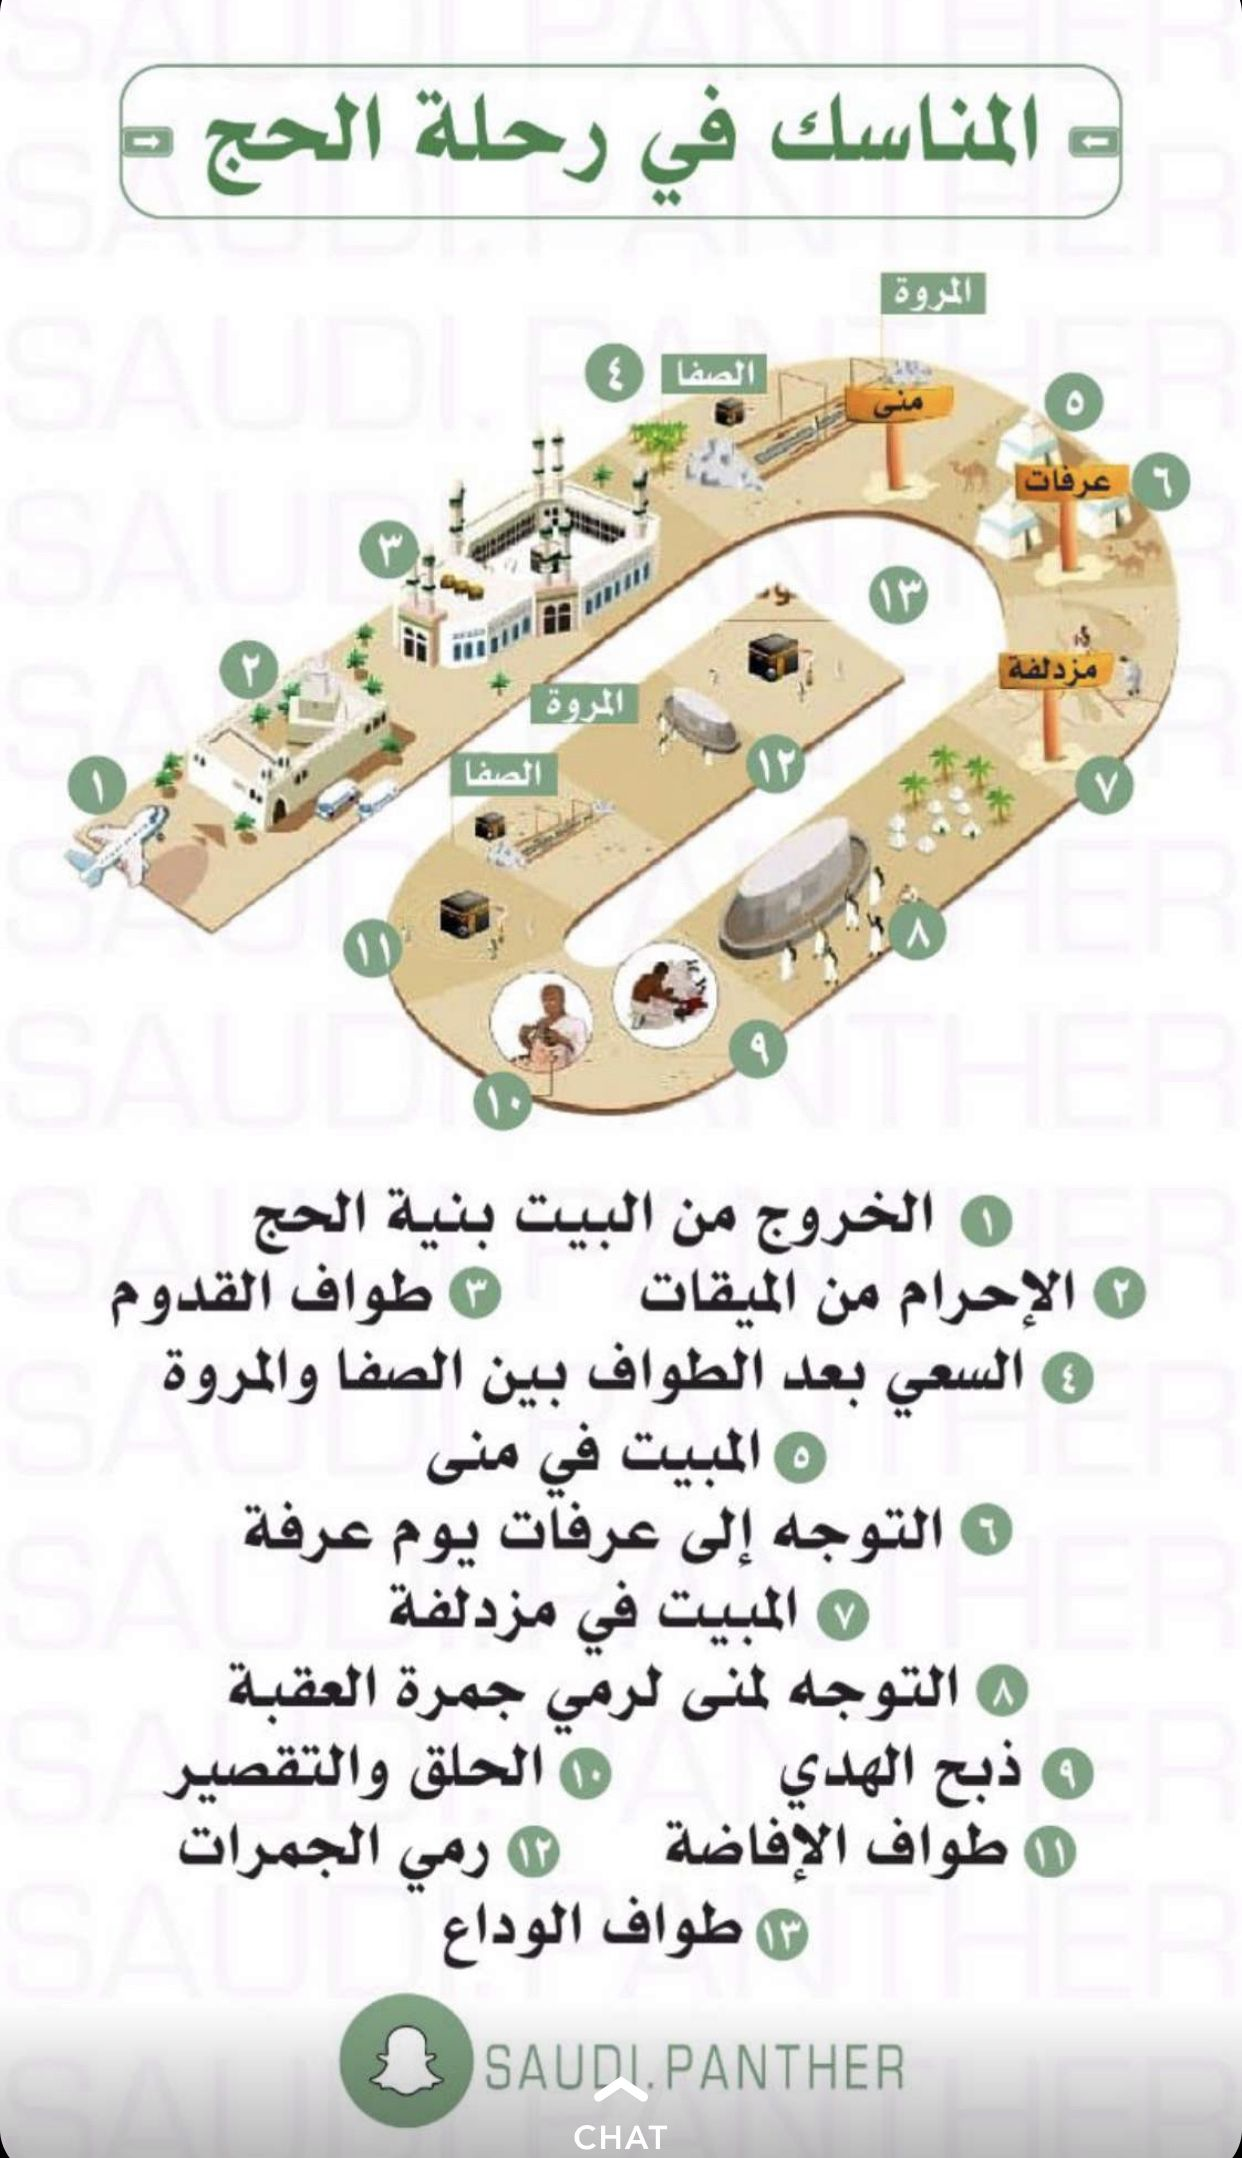 Pin By Re0o0ry ه م س ات ع اب ر ة On Informations معلومات Islam Facts Learn Islam Islam For Kids